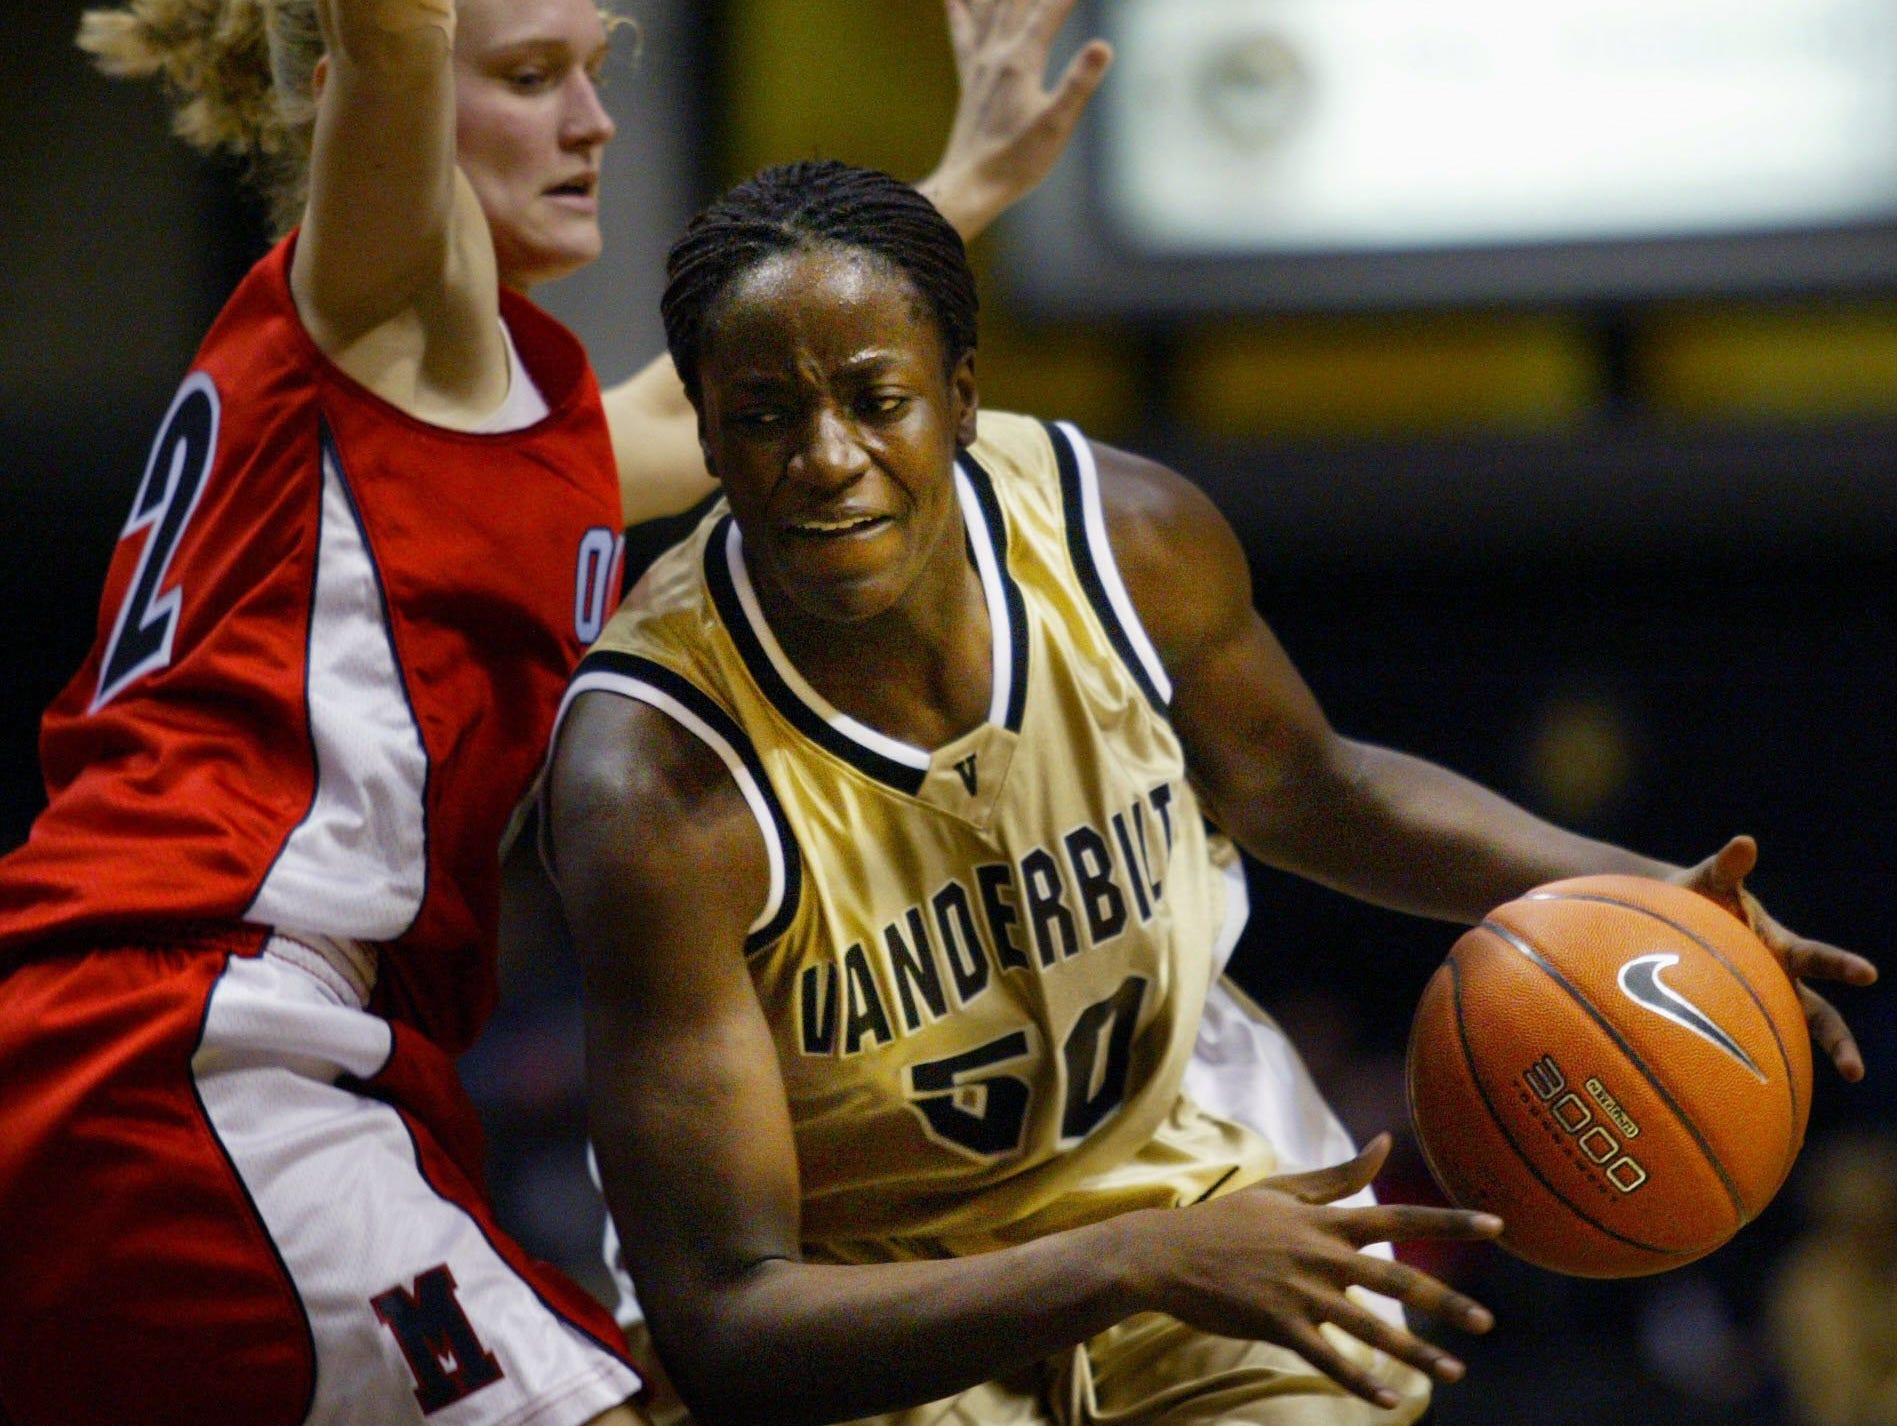 Former Vanderbilt standout Carla Thomas, right, was inducted into the Pennsylvania Sports Hall of Fame.